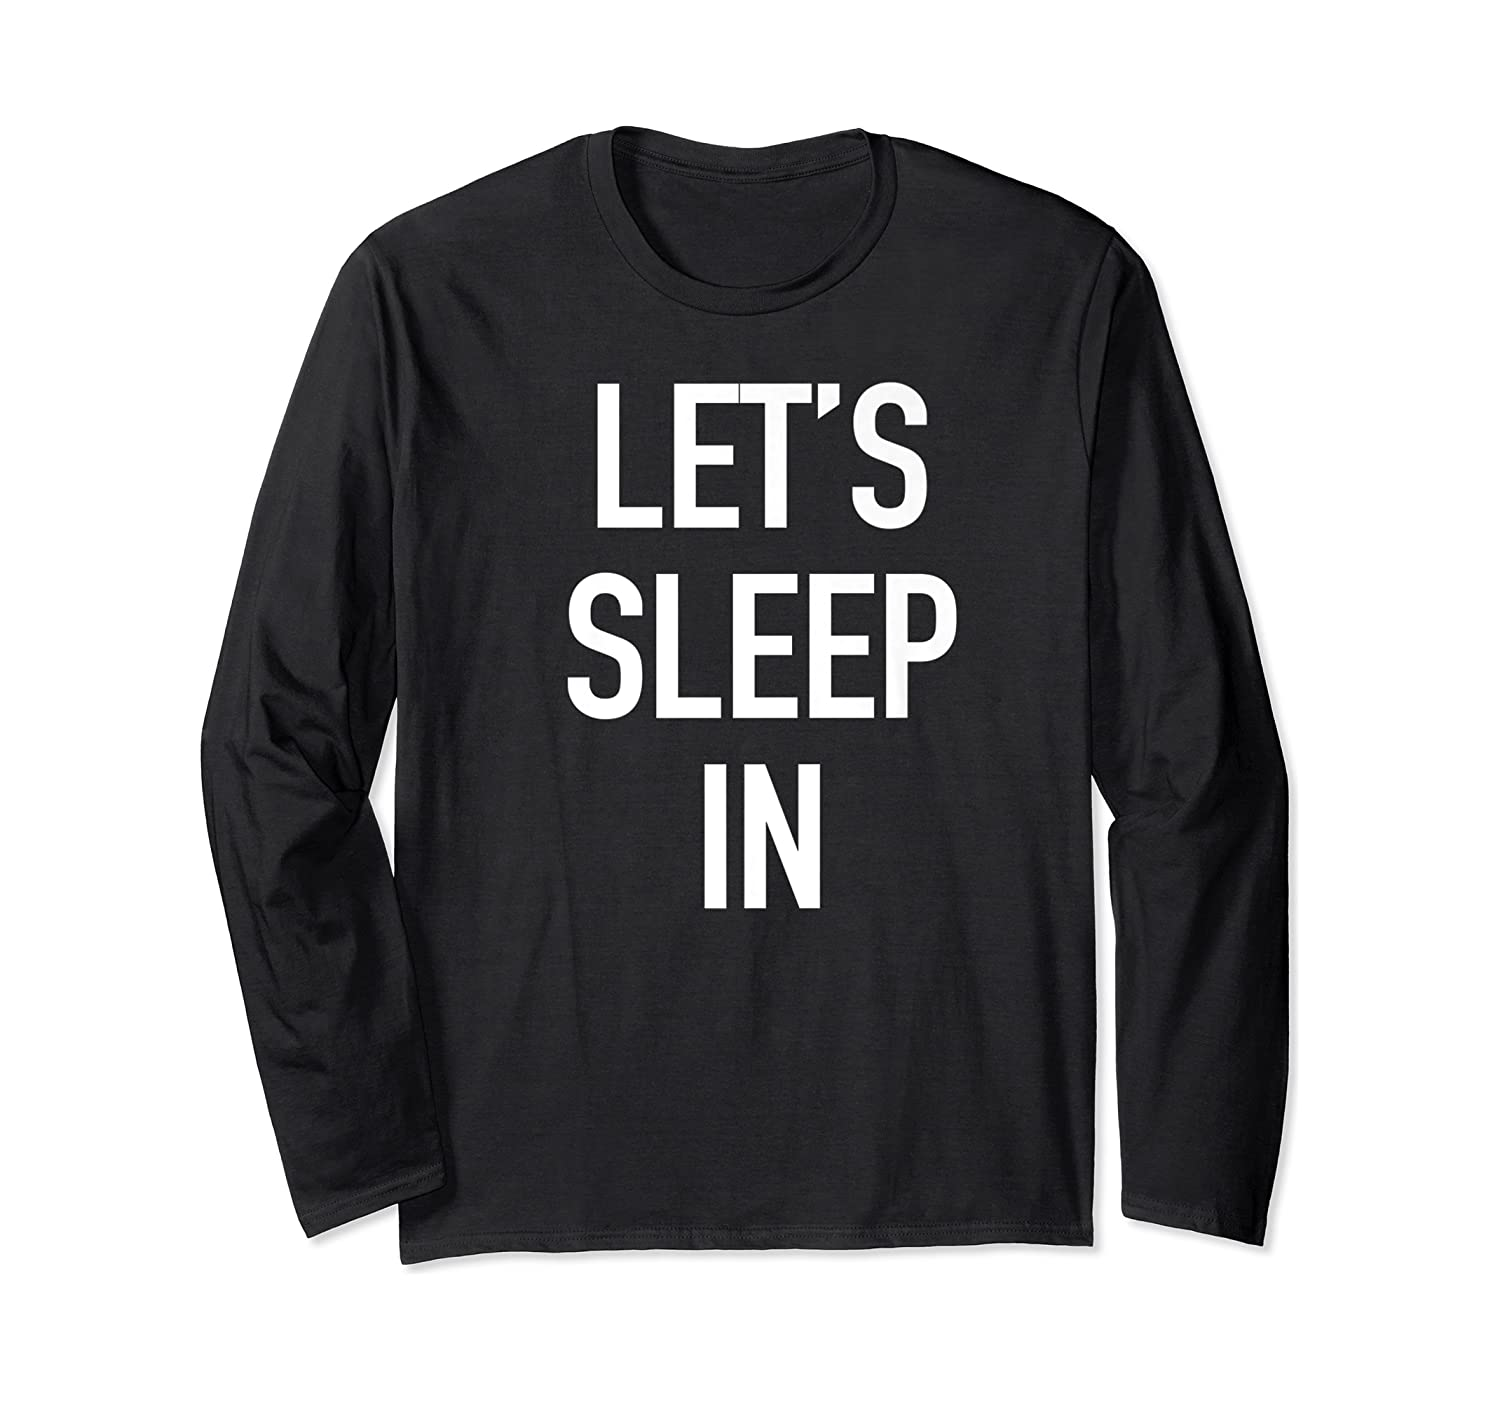 Lets Sleep In - Funny Lazy Day Pajama Quote T-shirt Long Sleeve T-shirt